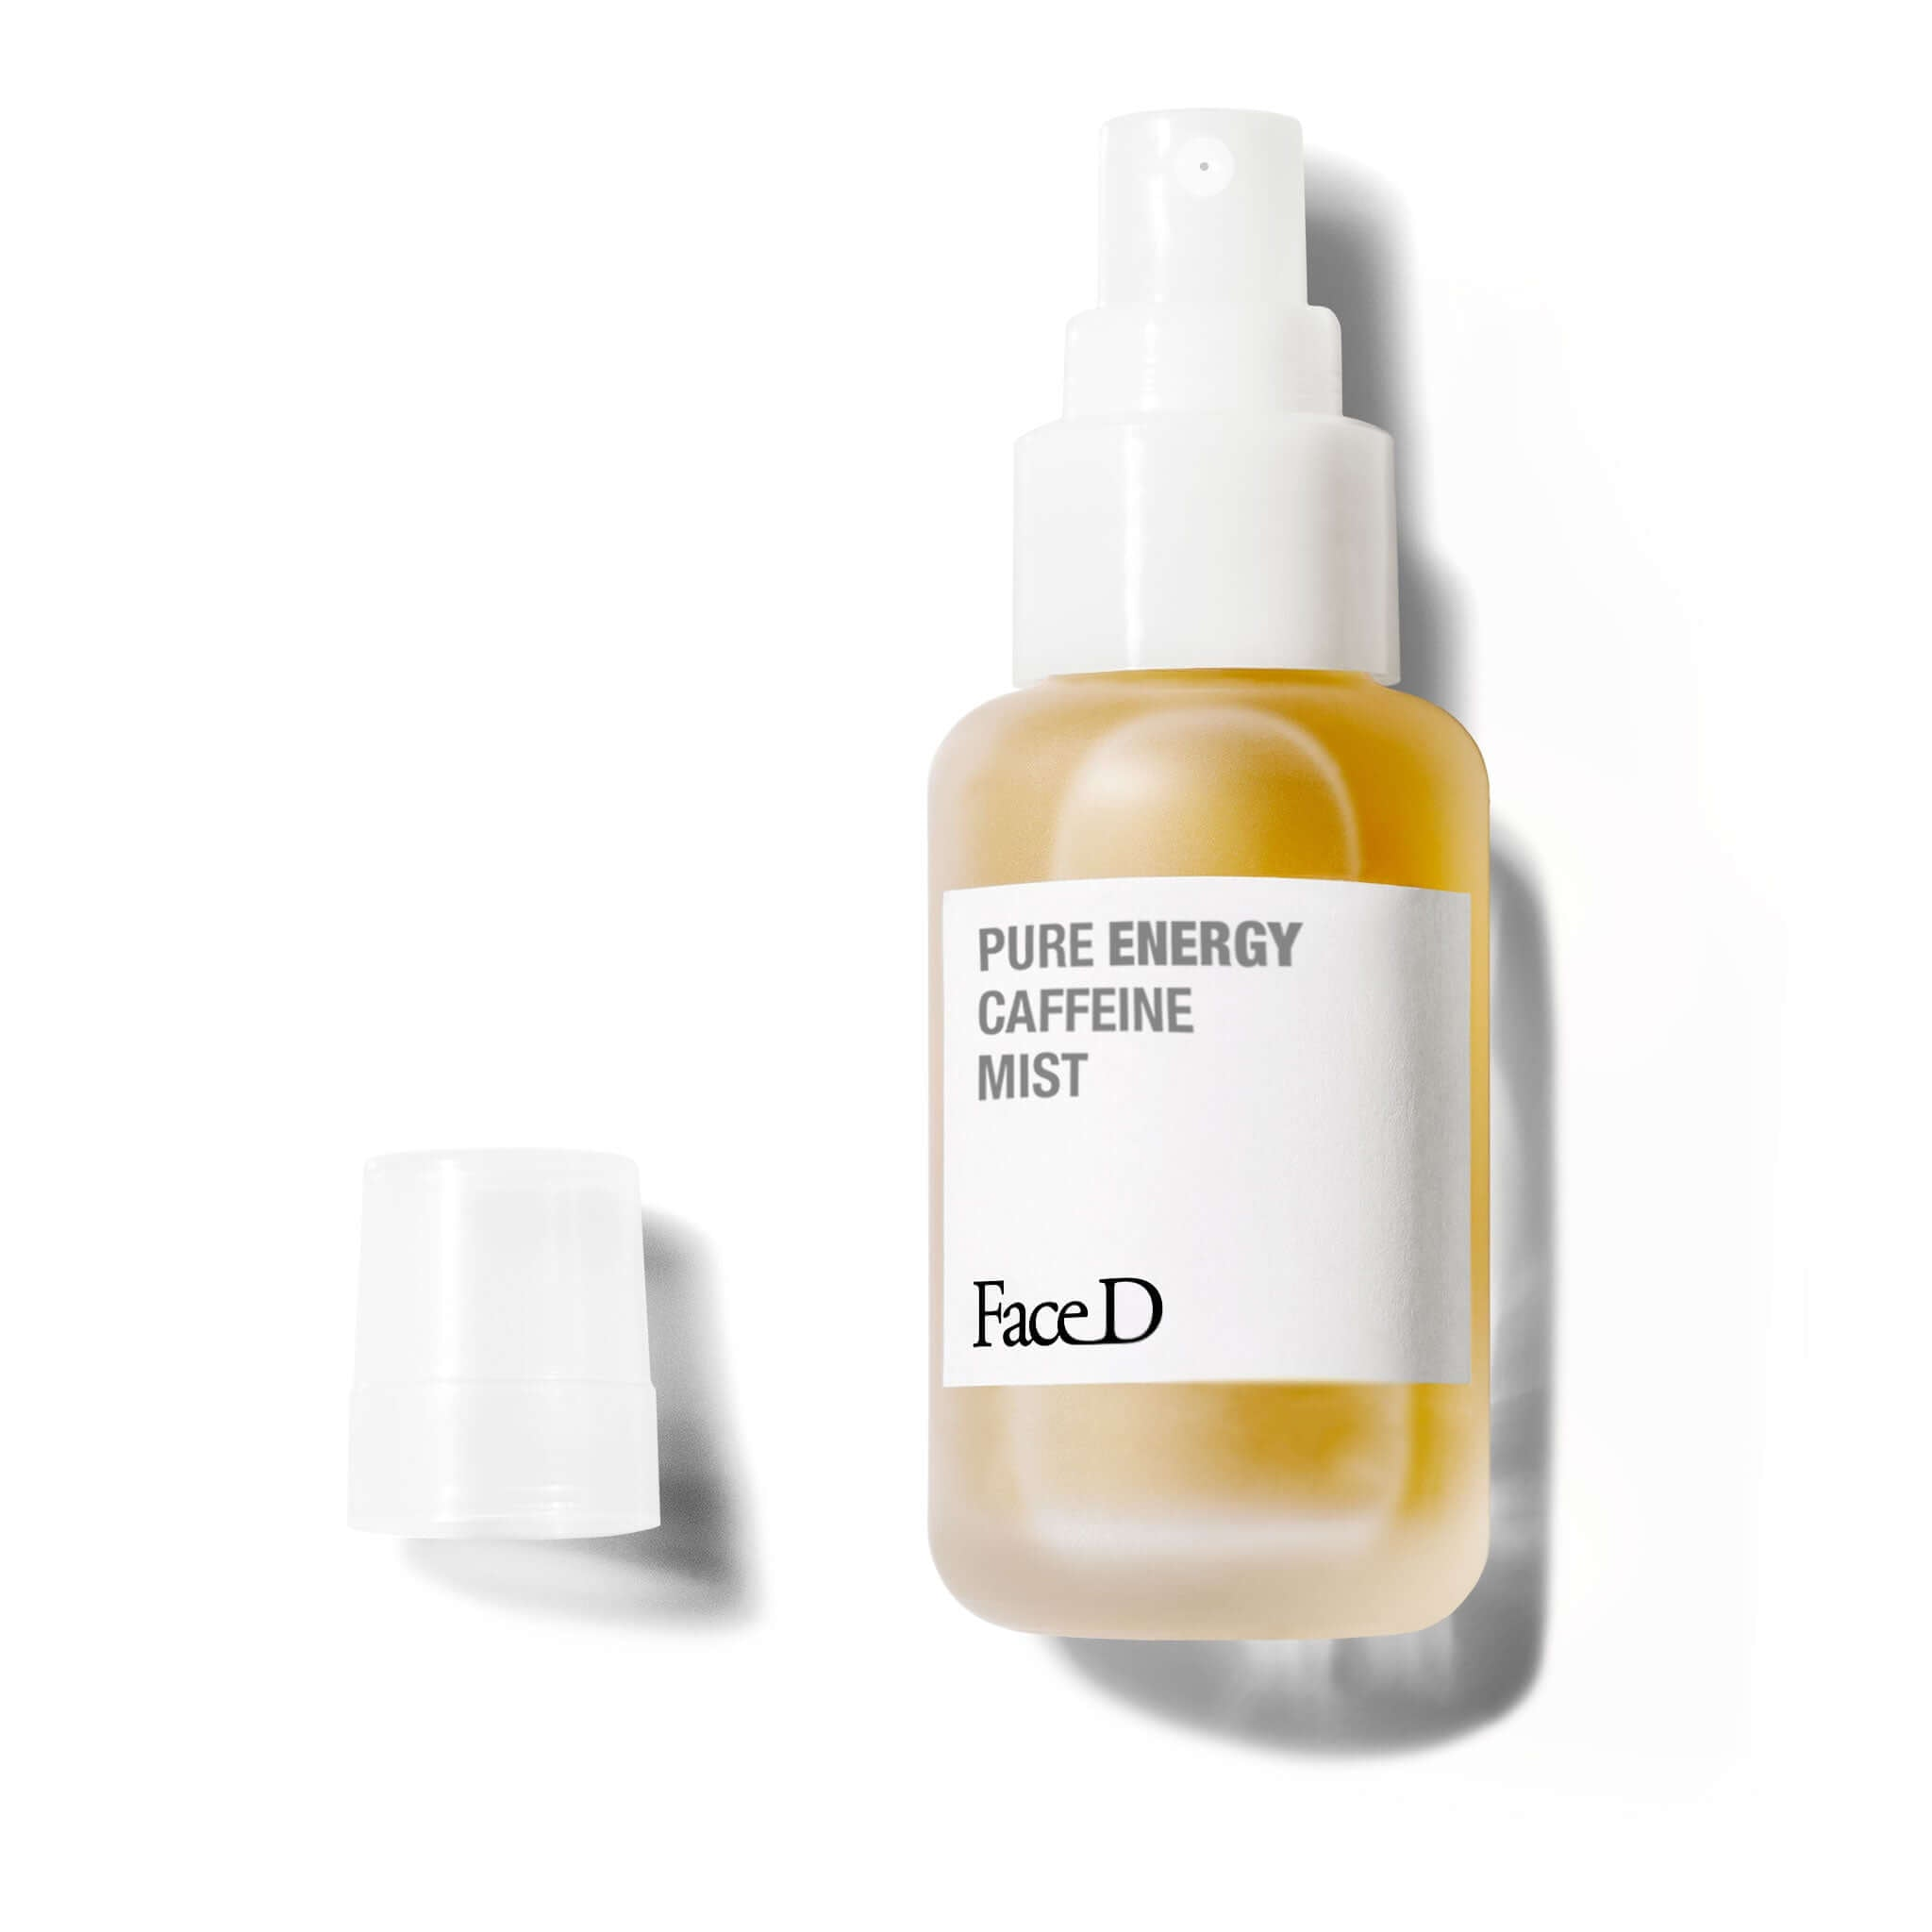 Pure-Energy-Caffeine-Mist-FaceD-Moisturisers || Pure-Energy-Mist-Caffeina-FaceD-Idratazione